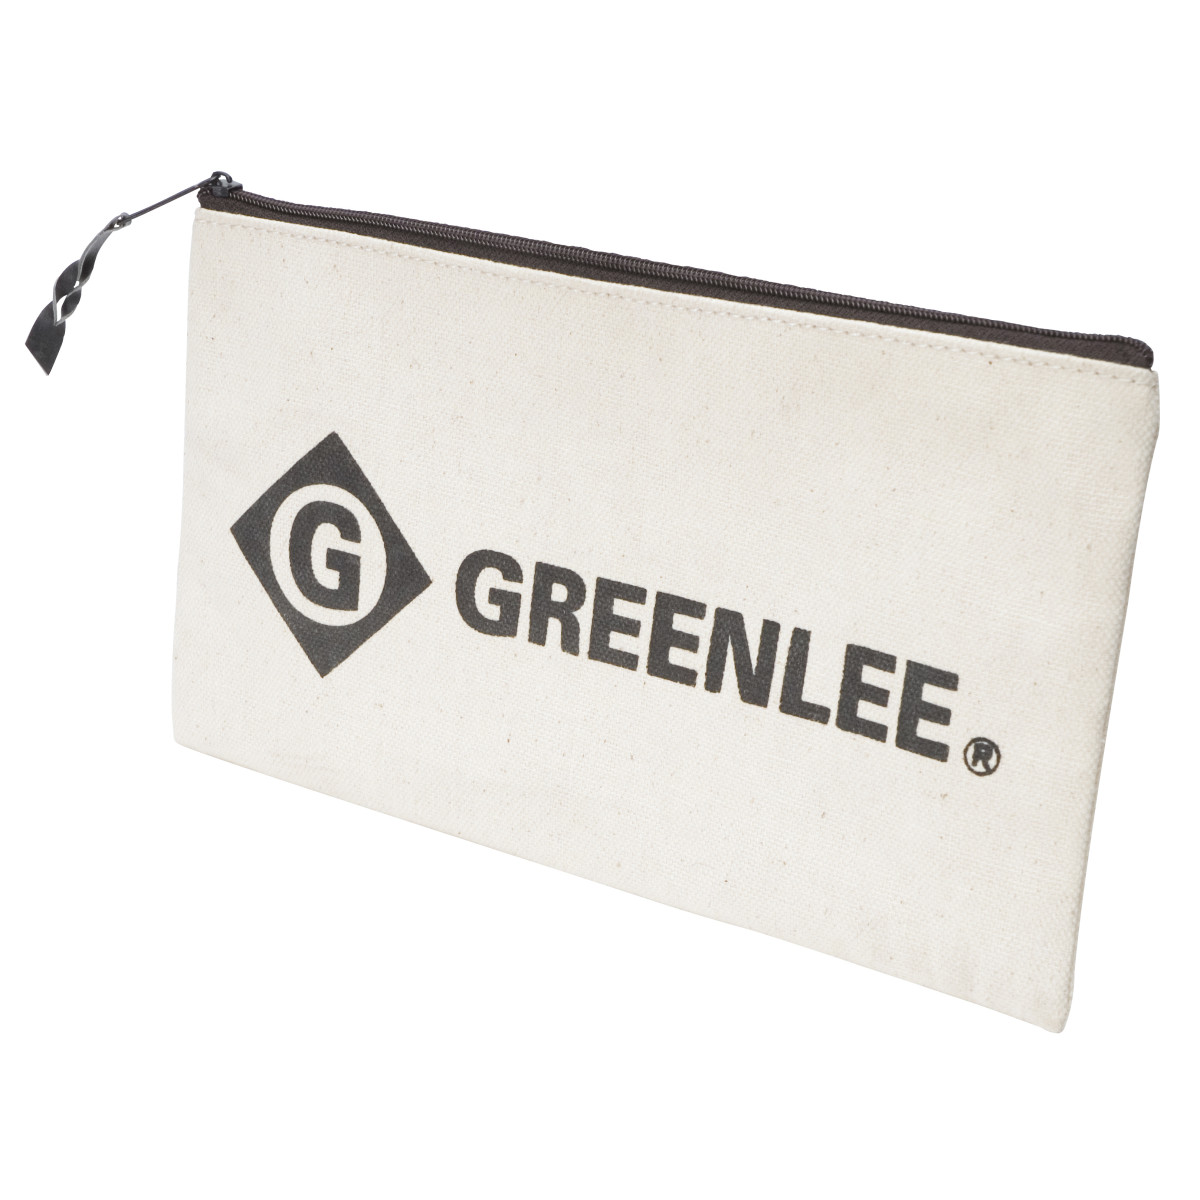 GRT0158-14 12 CANVAS ZIPPER BAG, GREENLEE